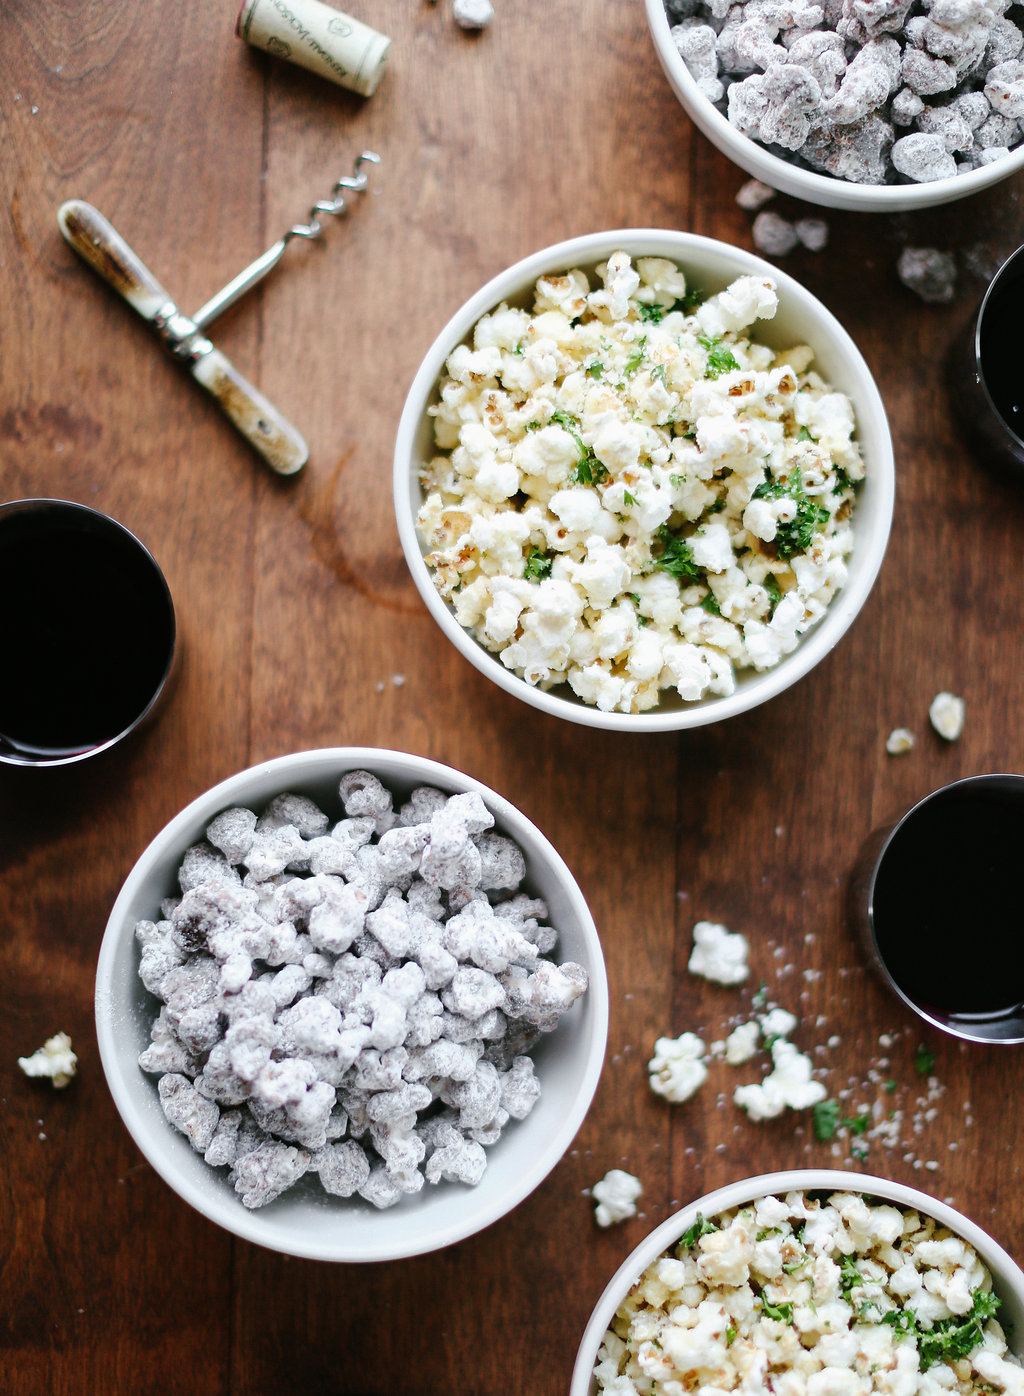 Two fantastic variations of classic popcorn - Parmesan & Parsley and Puppy Chow! #recipe